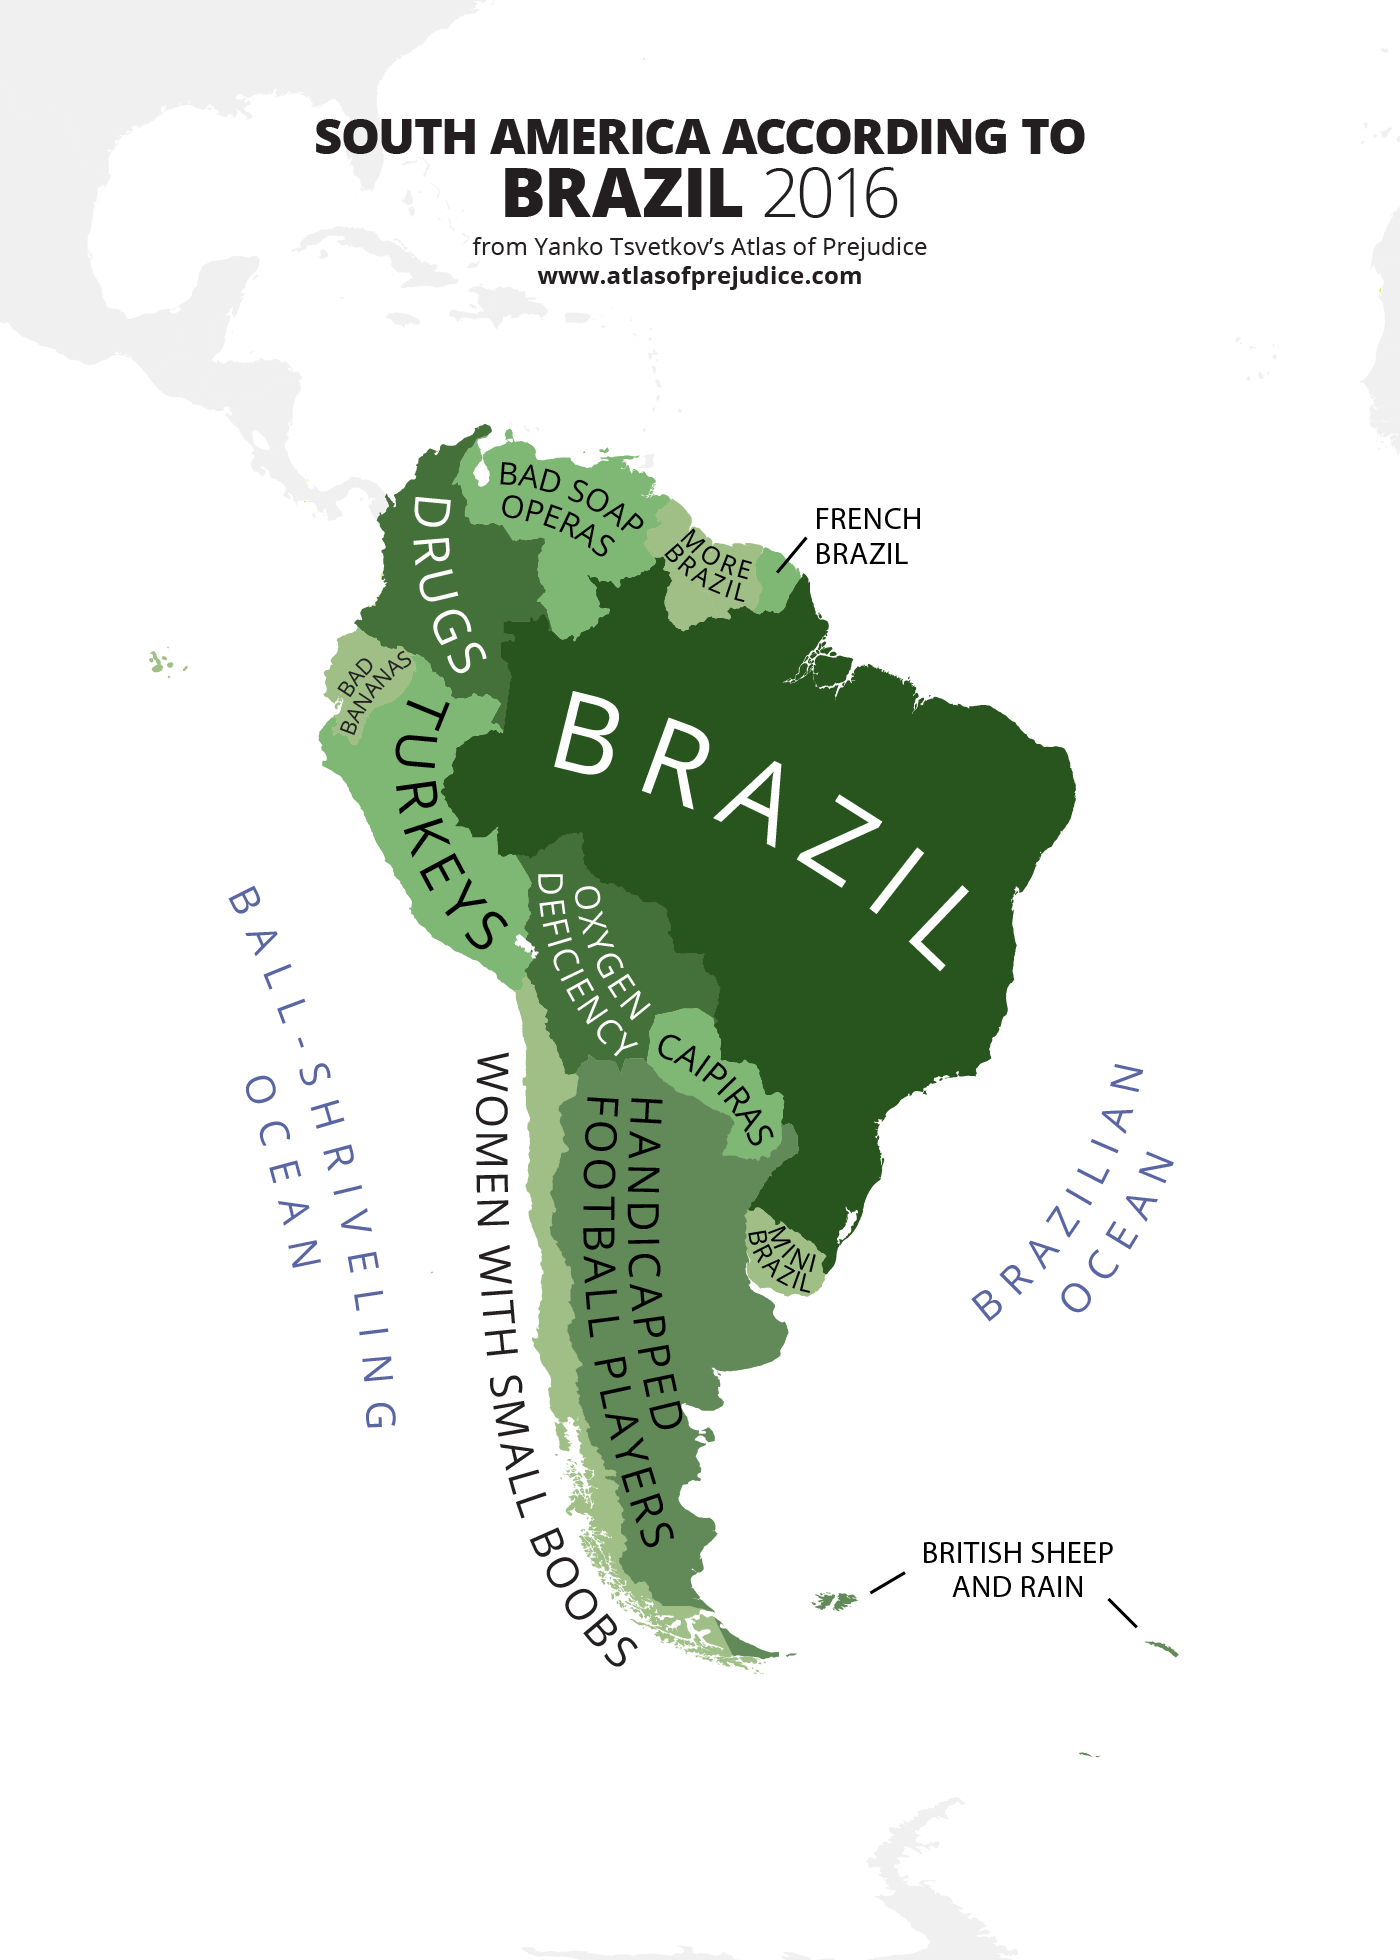 The latin world atlas of prejudice south america according to brazil atlas of prejudice gumiabroncs Image collections